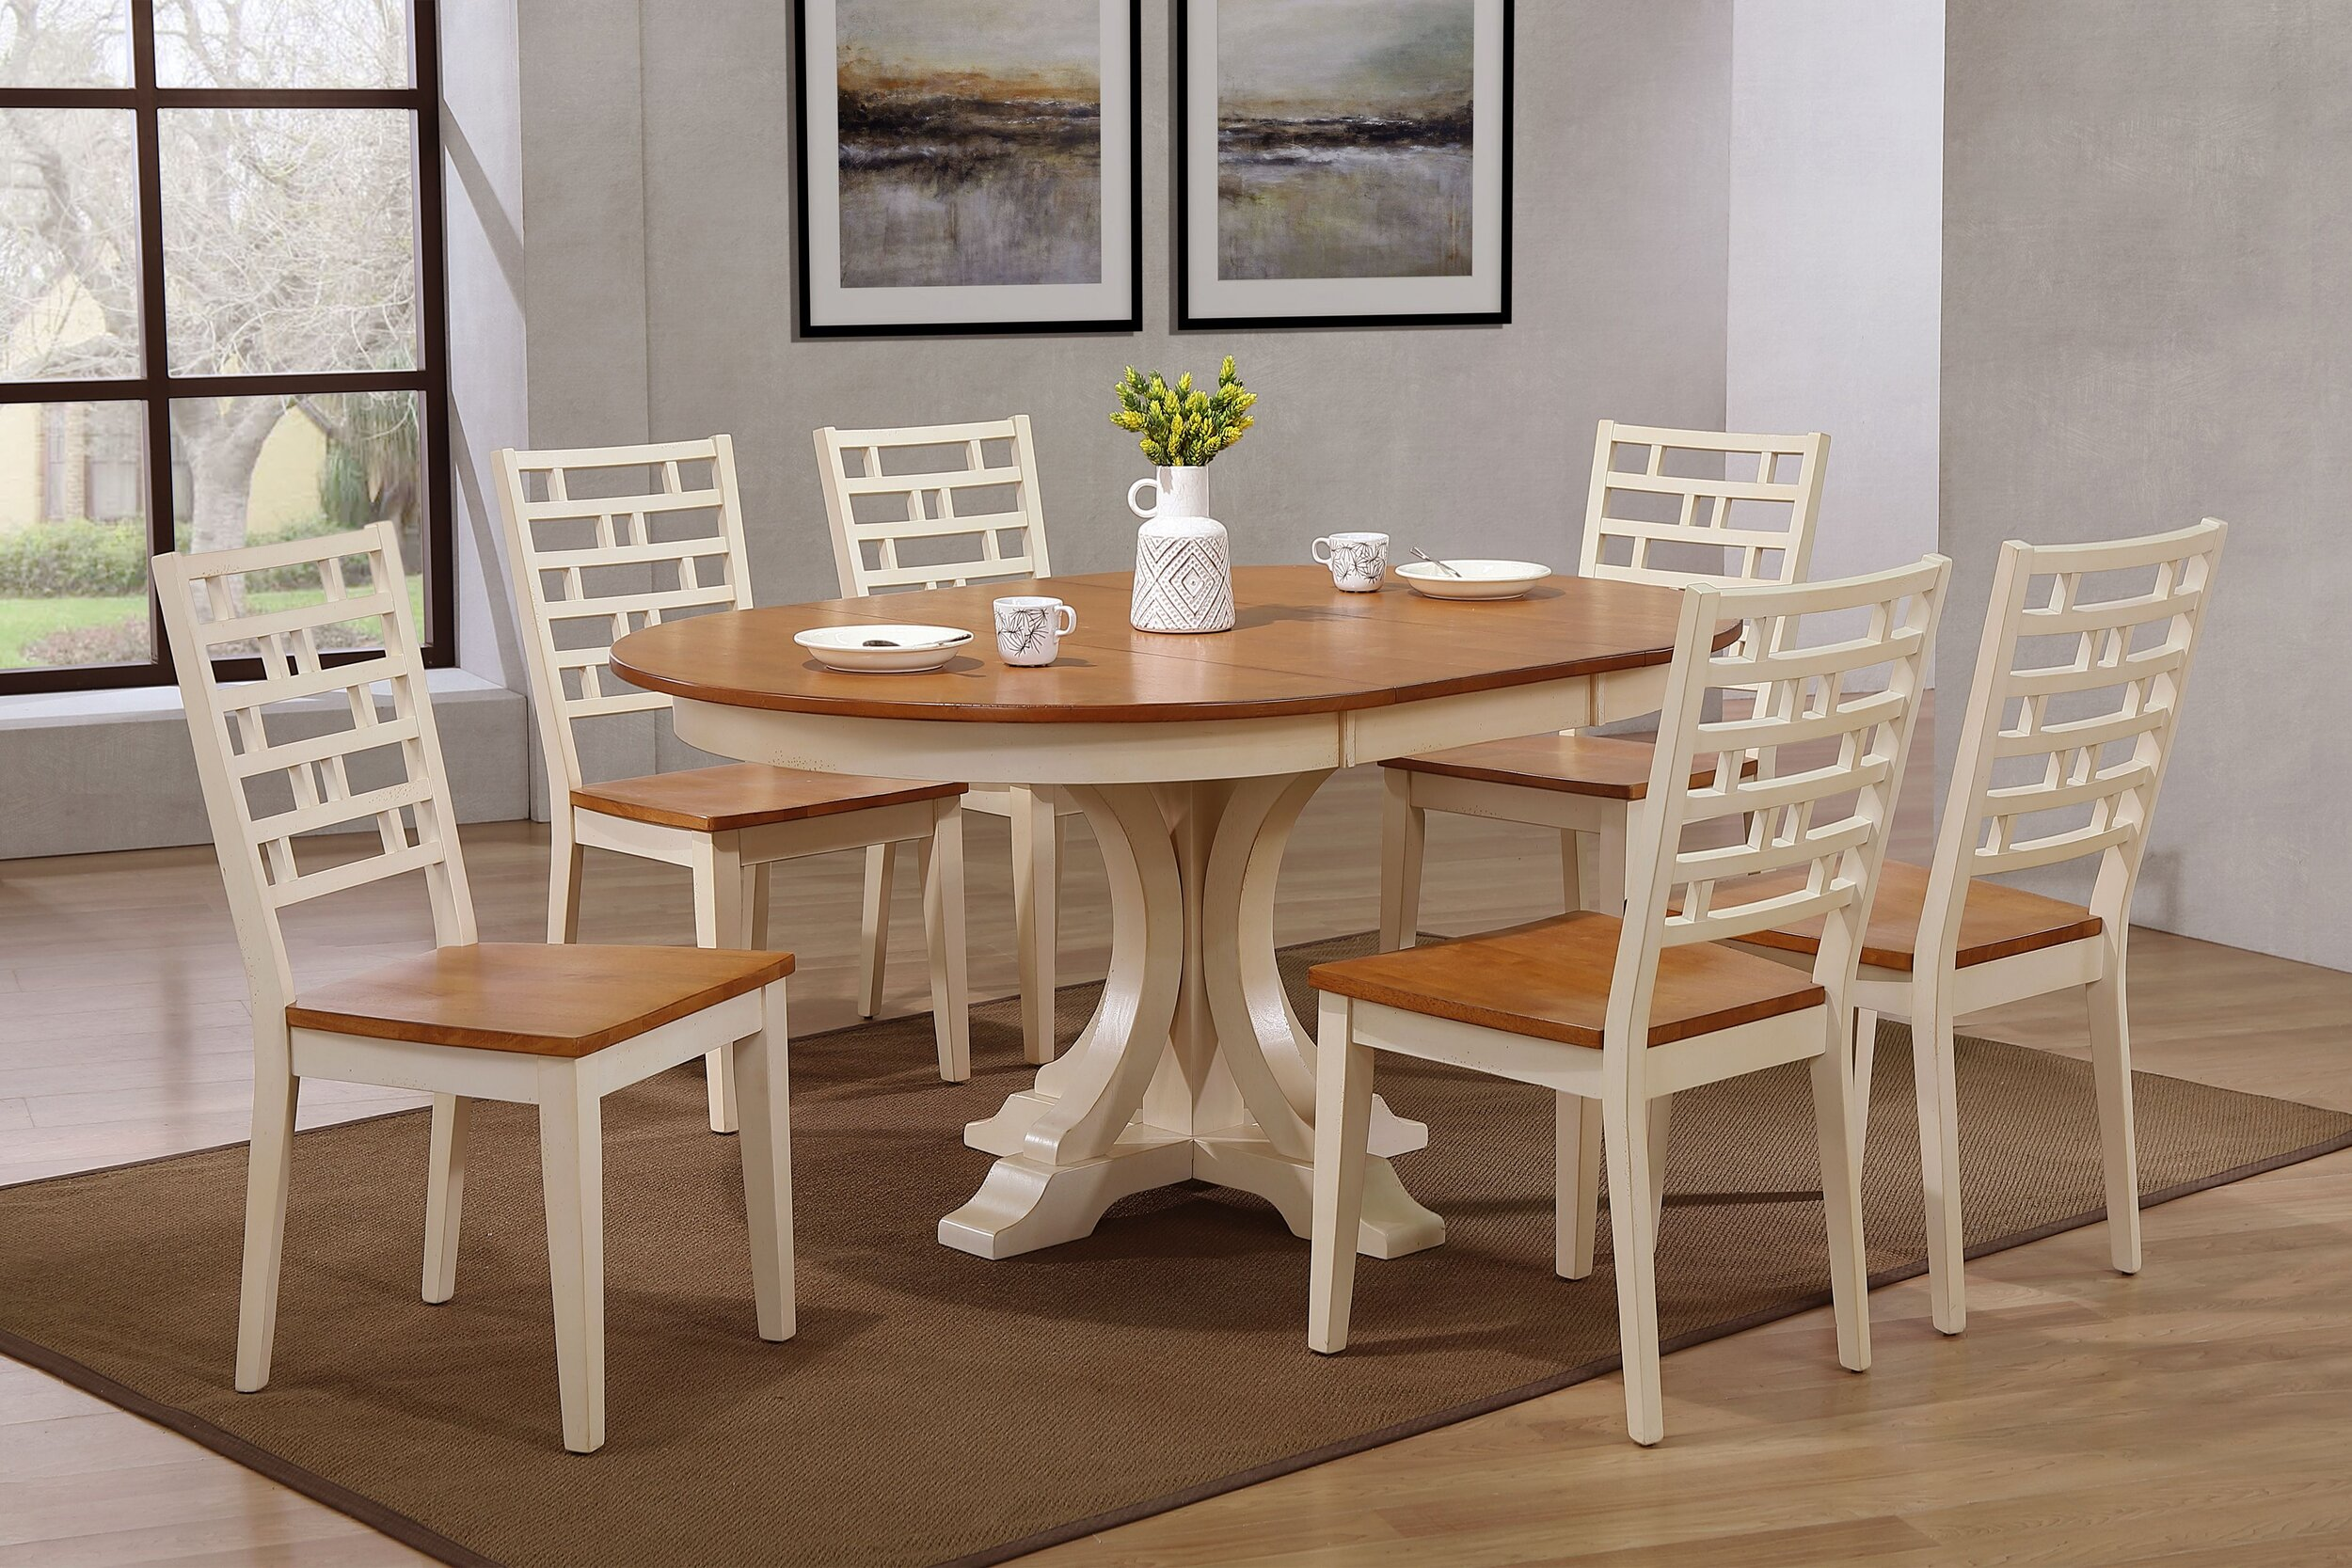 "45""x45""x63"" Art Deco Table In Antiqued Caramel Biscotti With Designer Back Chairs (7-Piece Dining Set)"